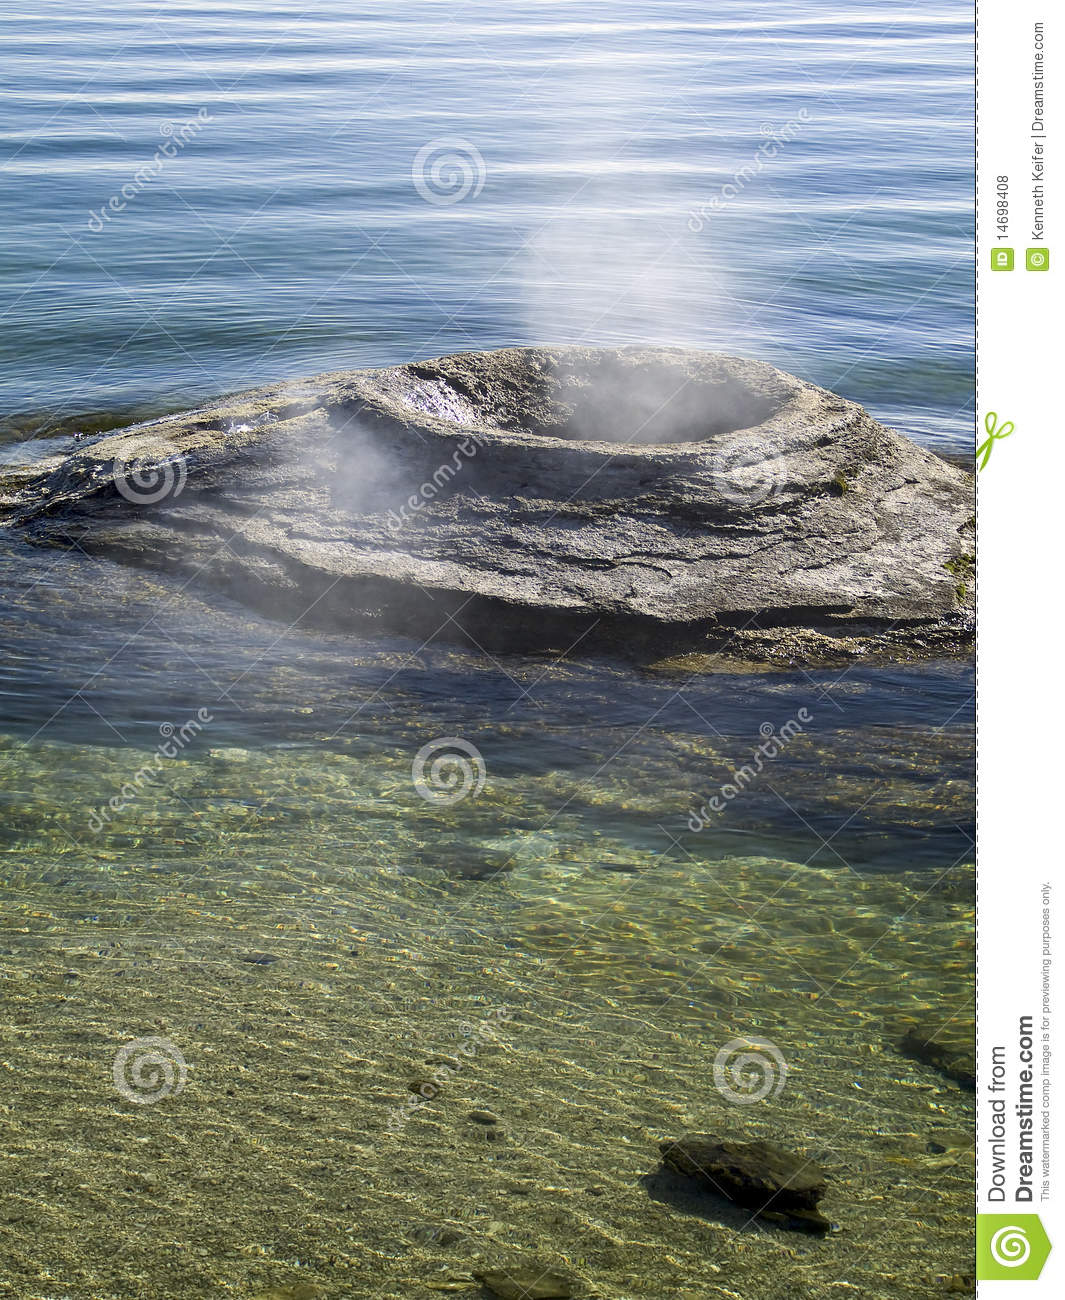 Fishing cone yellowstone national park royalty free stock for Yellowstone lake fishing